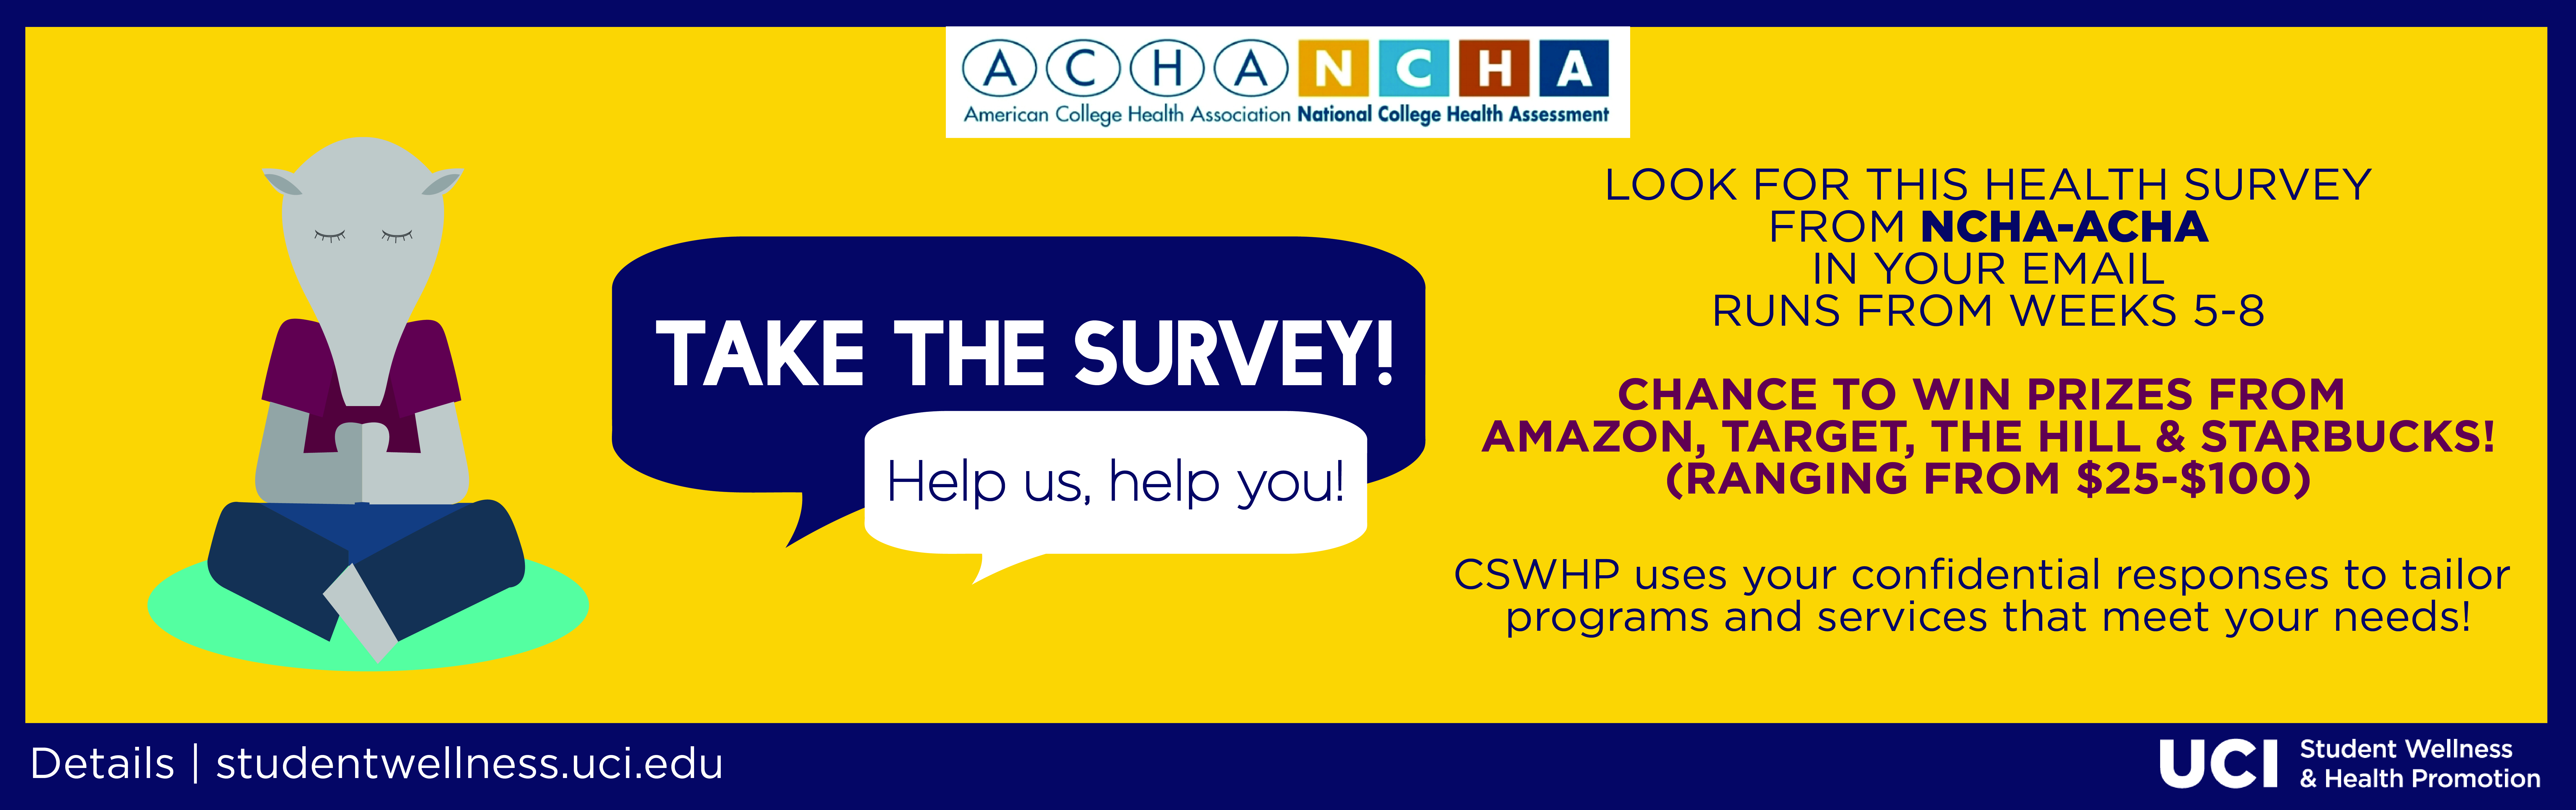 TAKE THE SURVEY! Help us, help you!  Look for this health survey from ncha-acha in your email runs from weeks 5-8 chance to win prizes from amazon, target, the hill & Starbucks (ranging from $25 - $100)  CSWHP uses your confidential responses to tailor pr